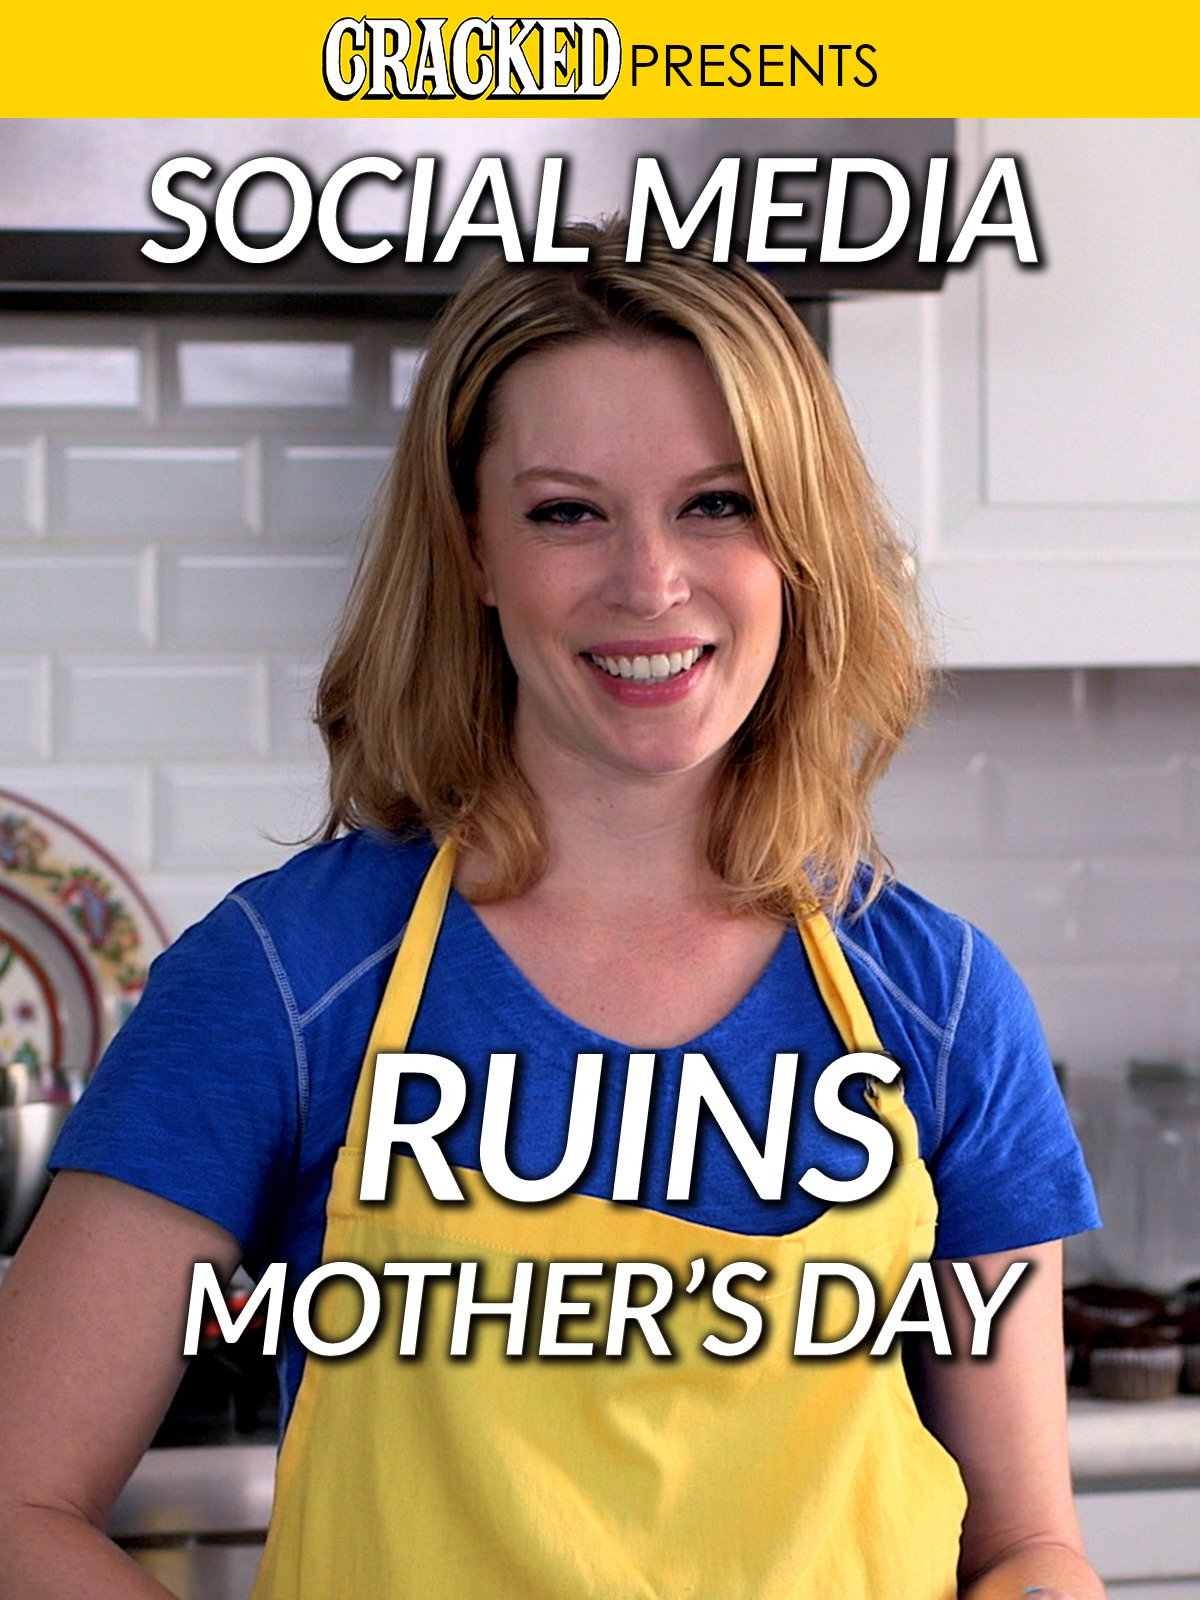 Social Media Ruins Mother's Day